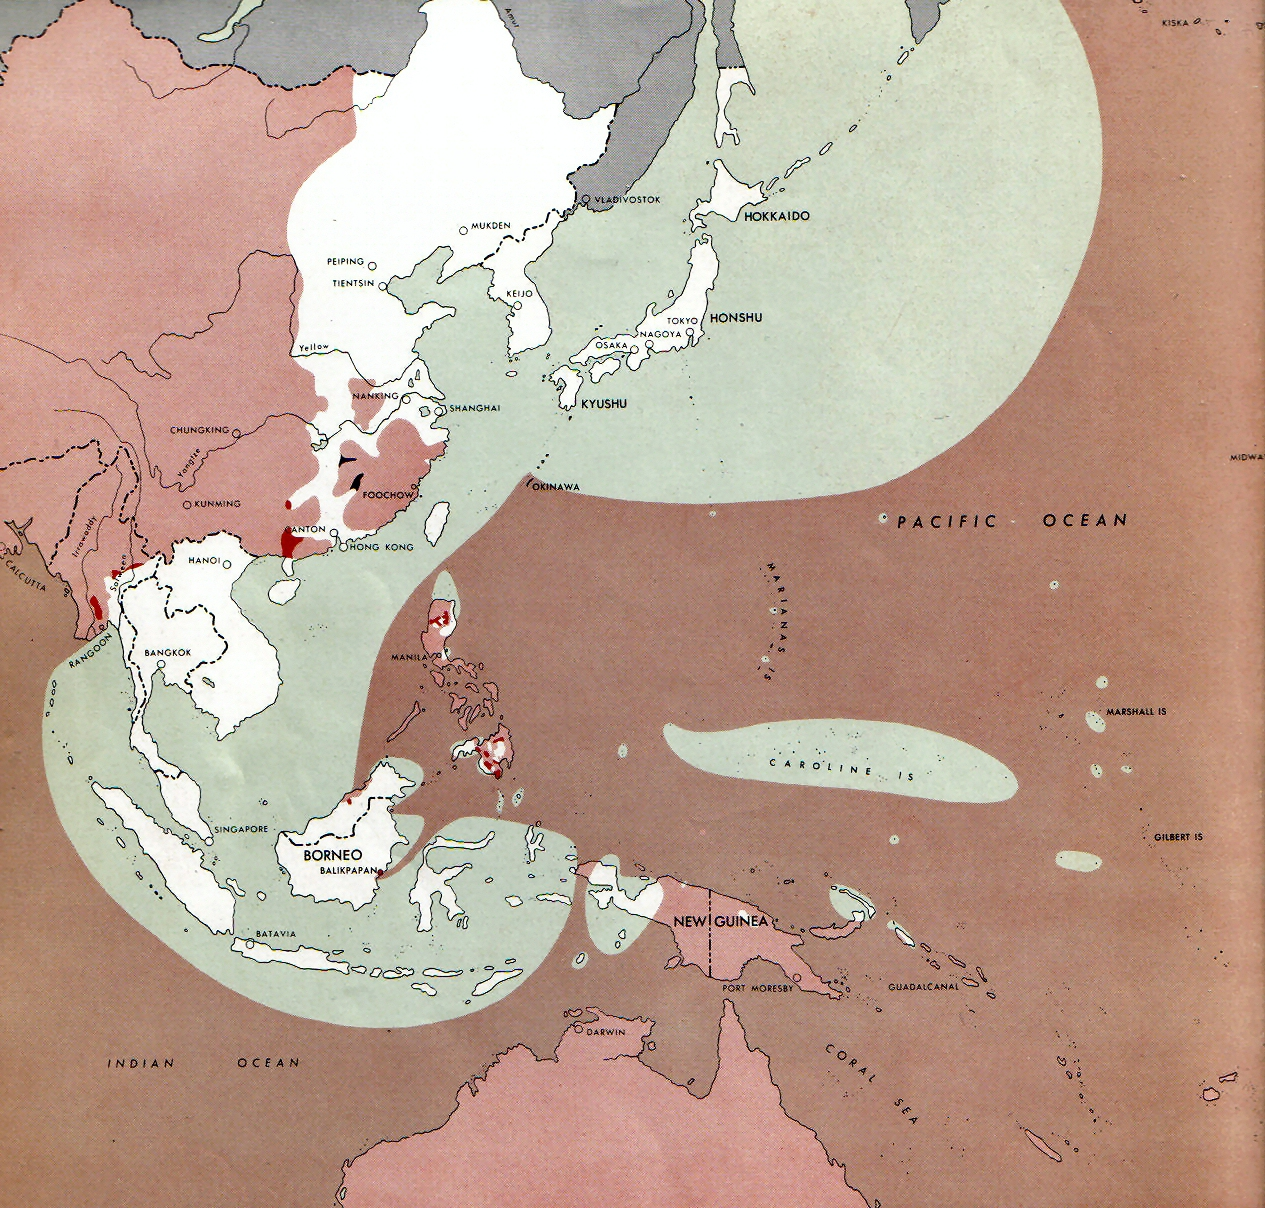 A map of East Asia and the Western Pacific during World War II